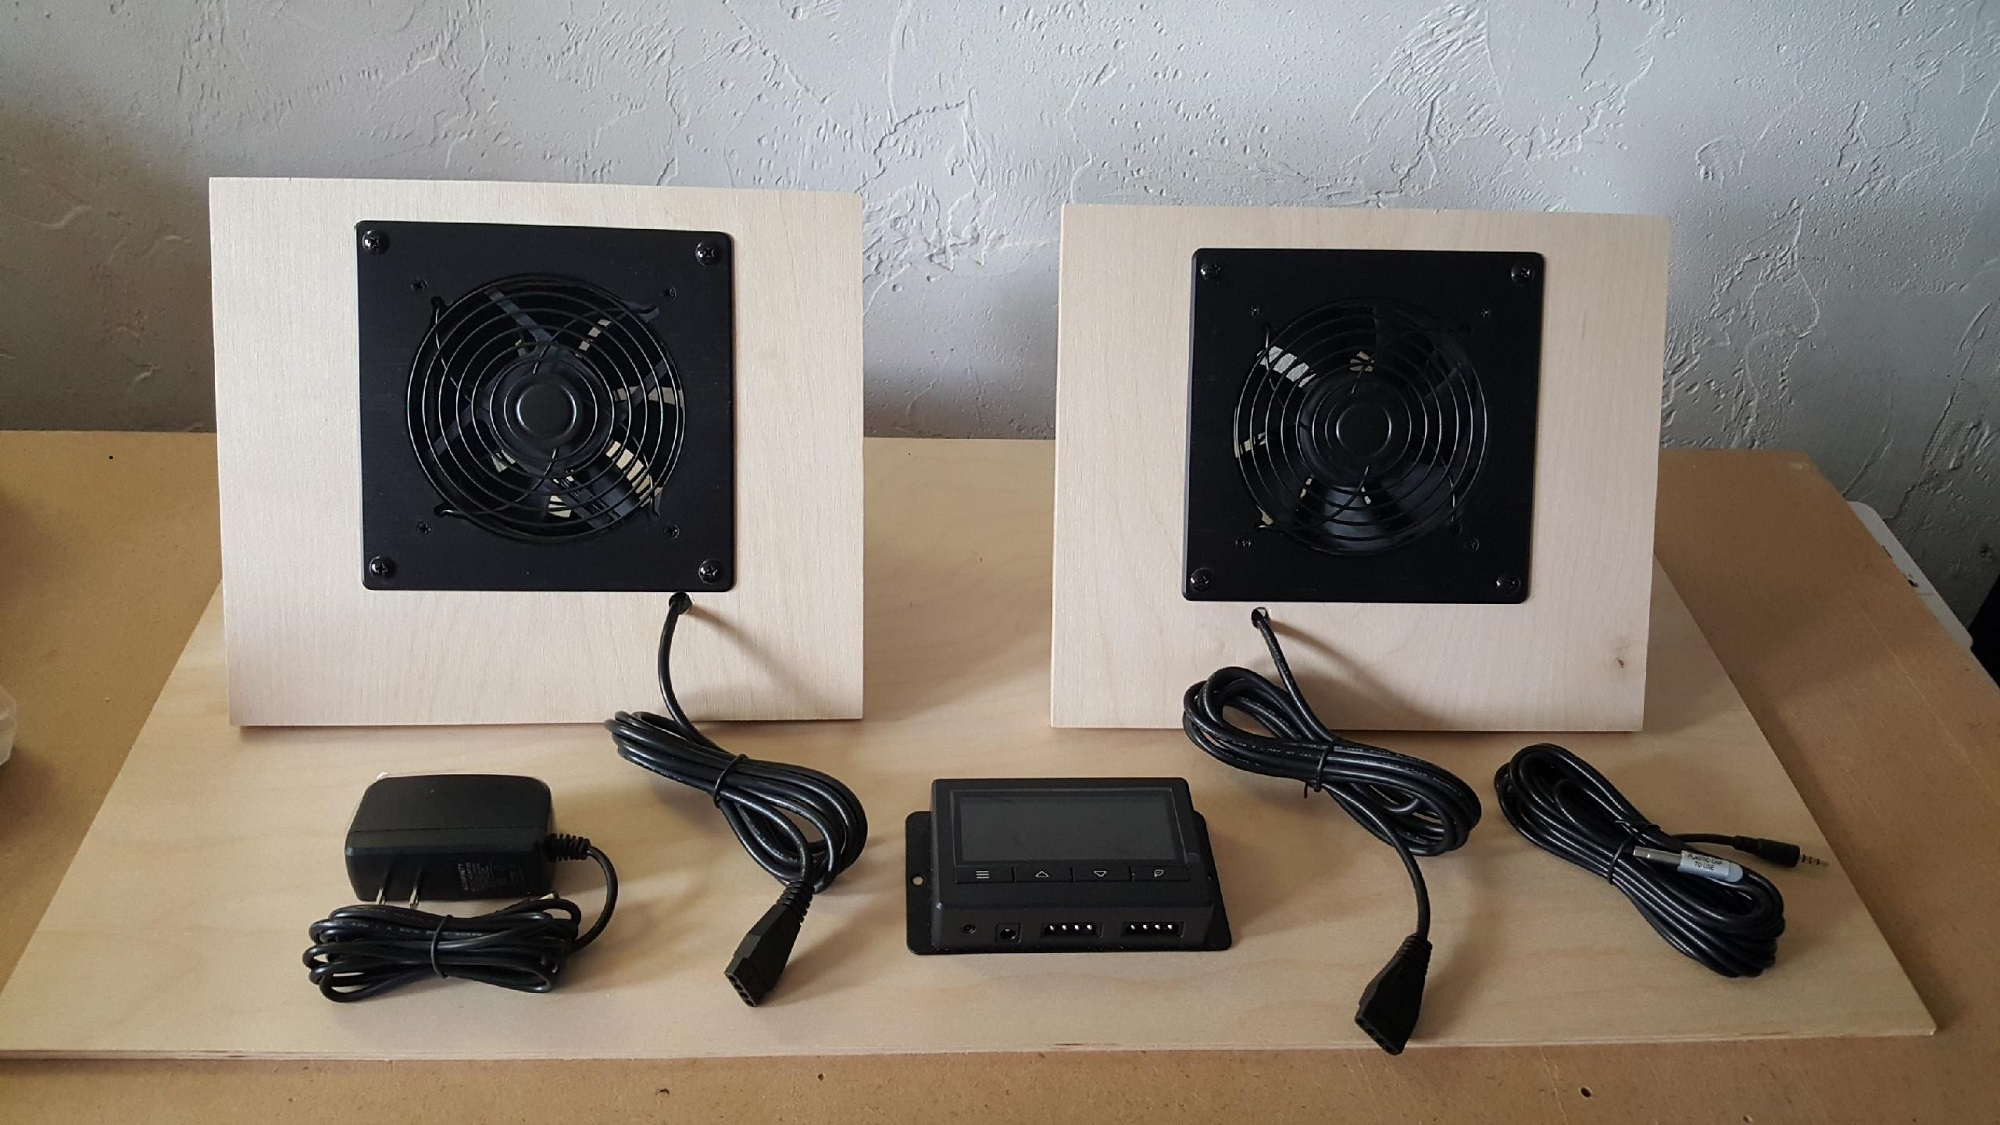 Solar Air Heater Fan Wall Vent Kit